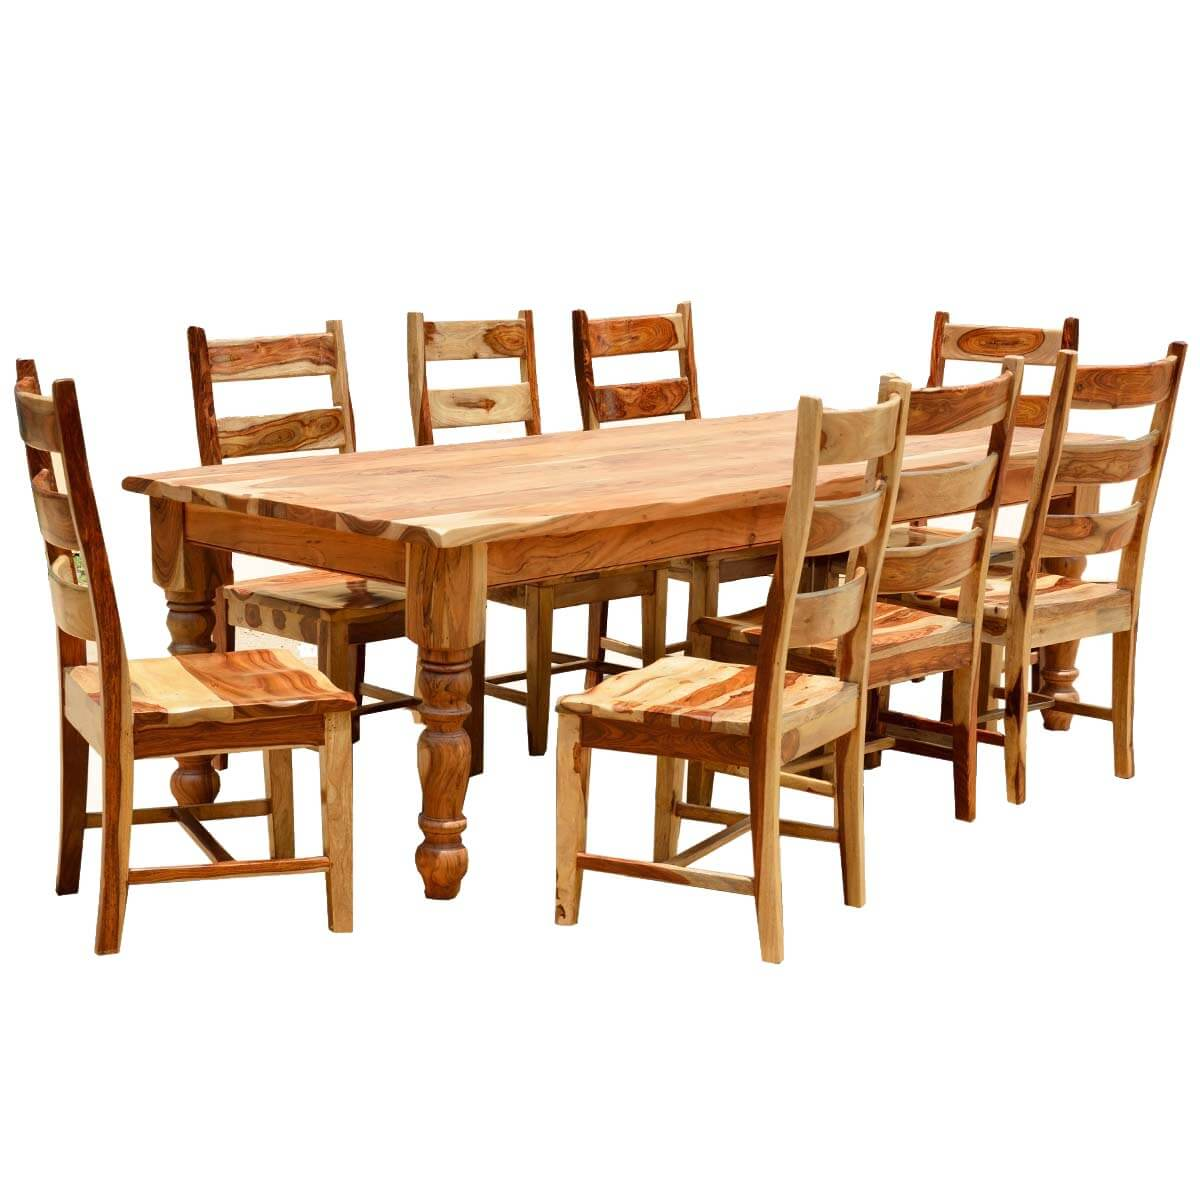 Rustic solid wood farmhouse dining room table chair set Dining table and bench set